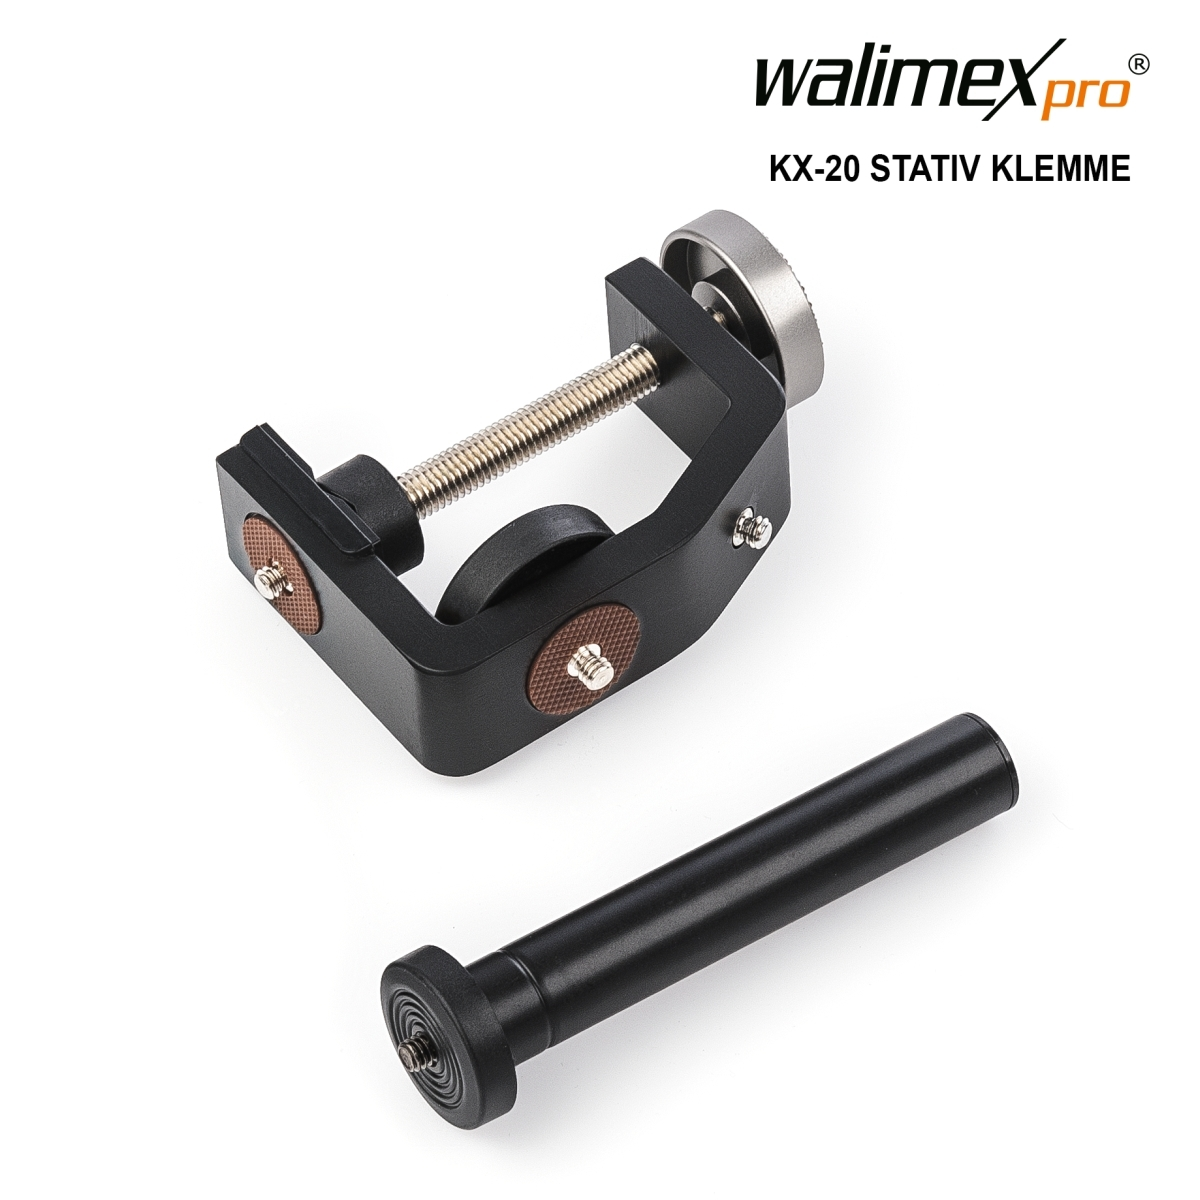 Walimex pro KX-20 Stand Clamp